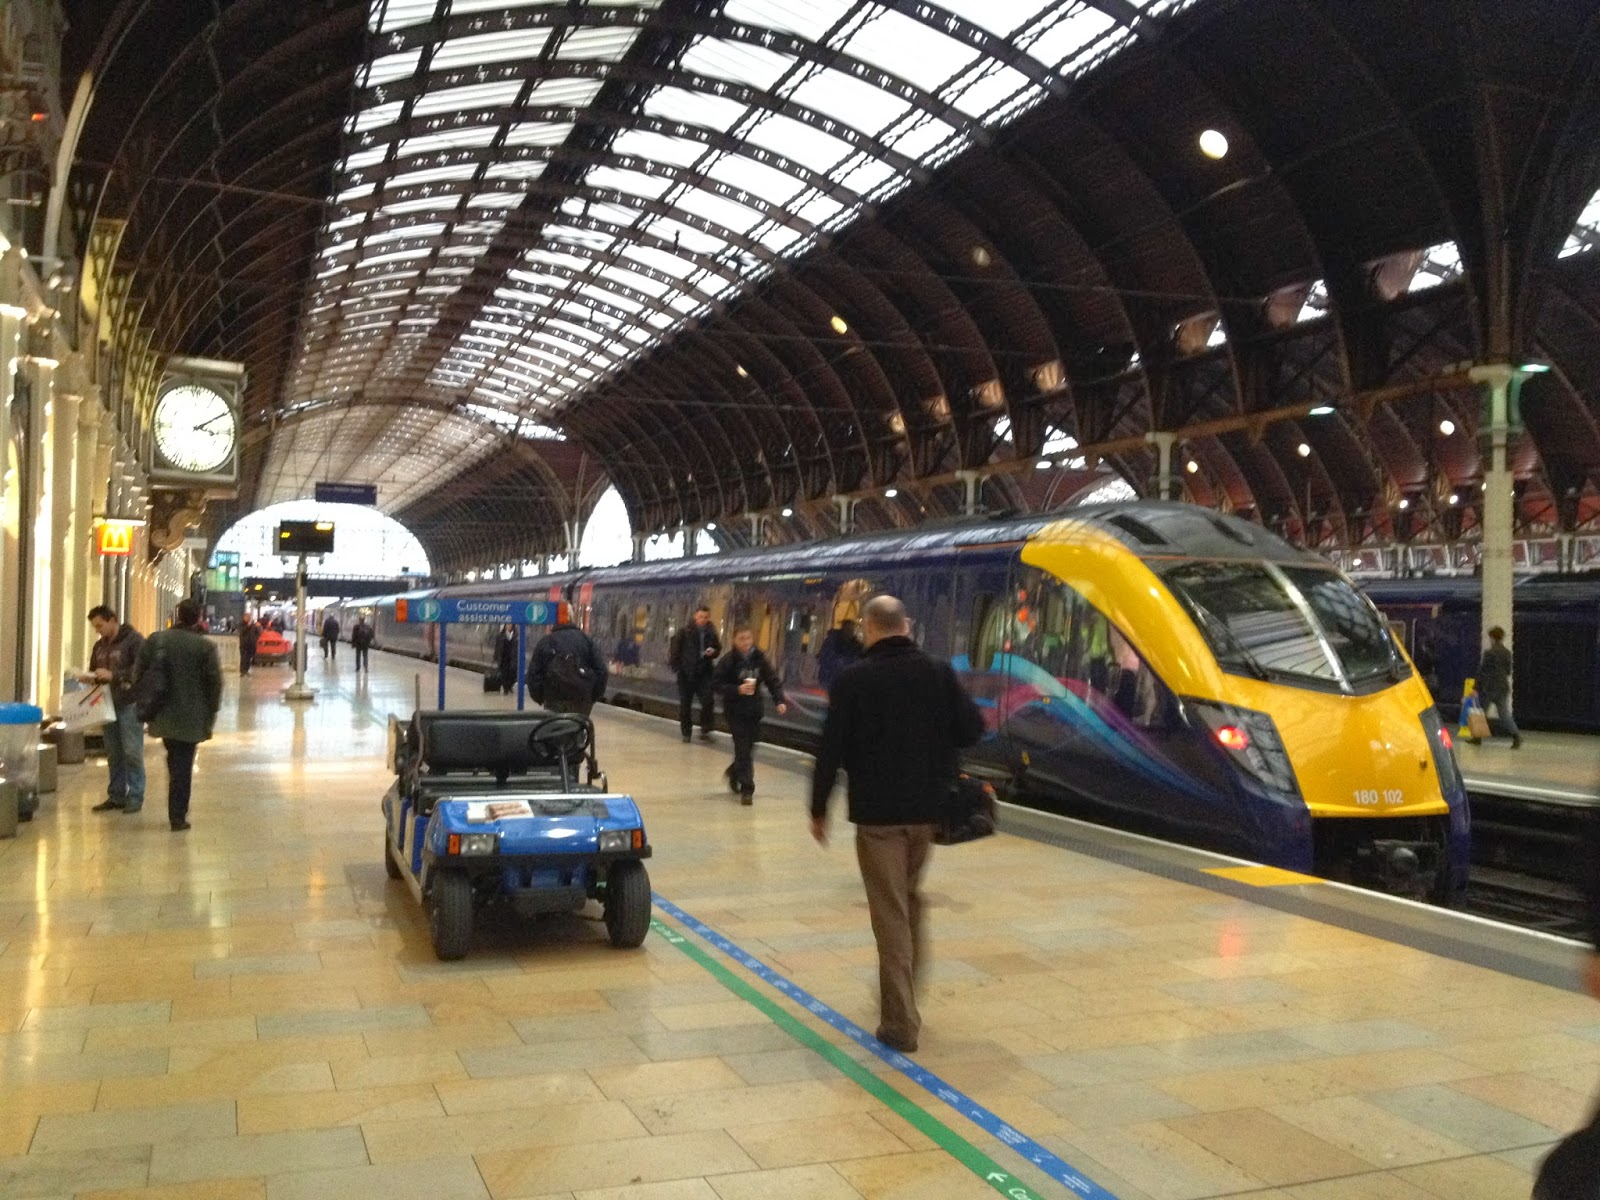 Beer branches paddington london part i these days first great western heathrow connect heathrow express and chilterm share the 14 platforms with fgw making up the vast majority of services sciox Choice Image